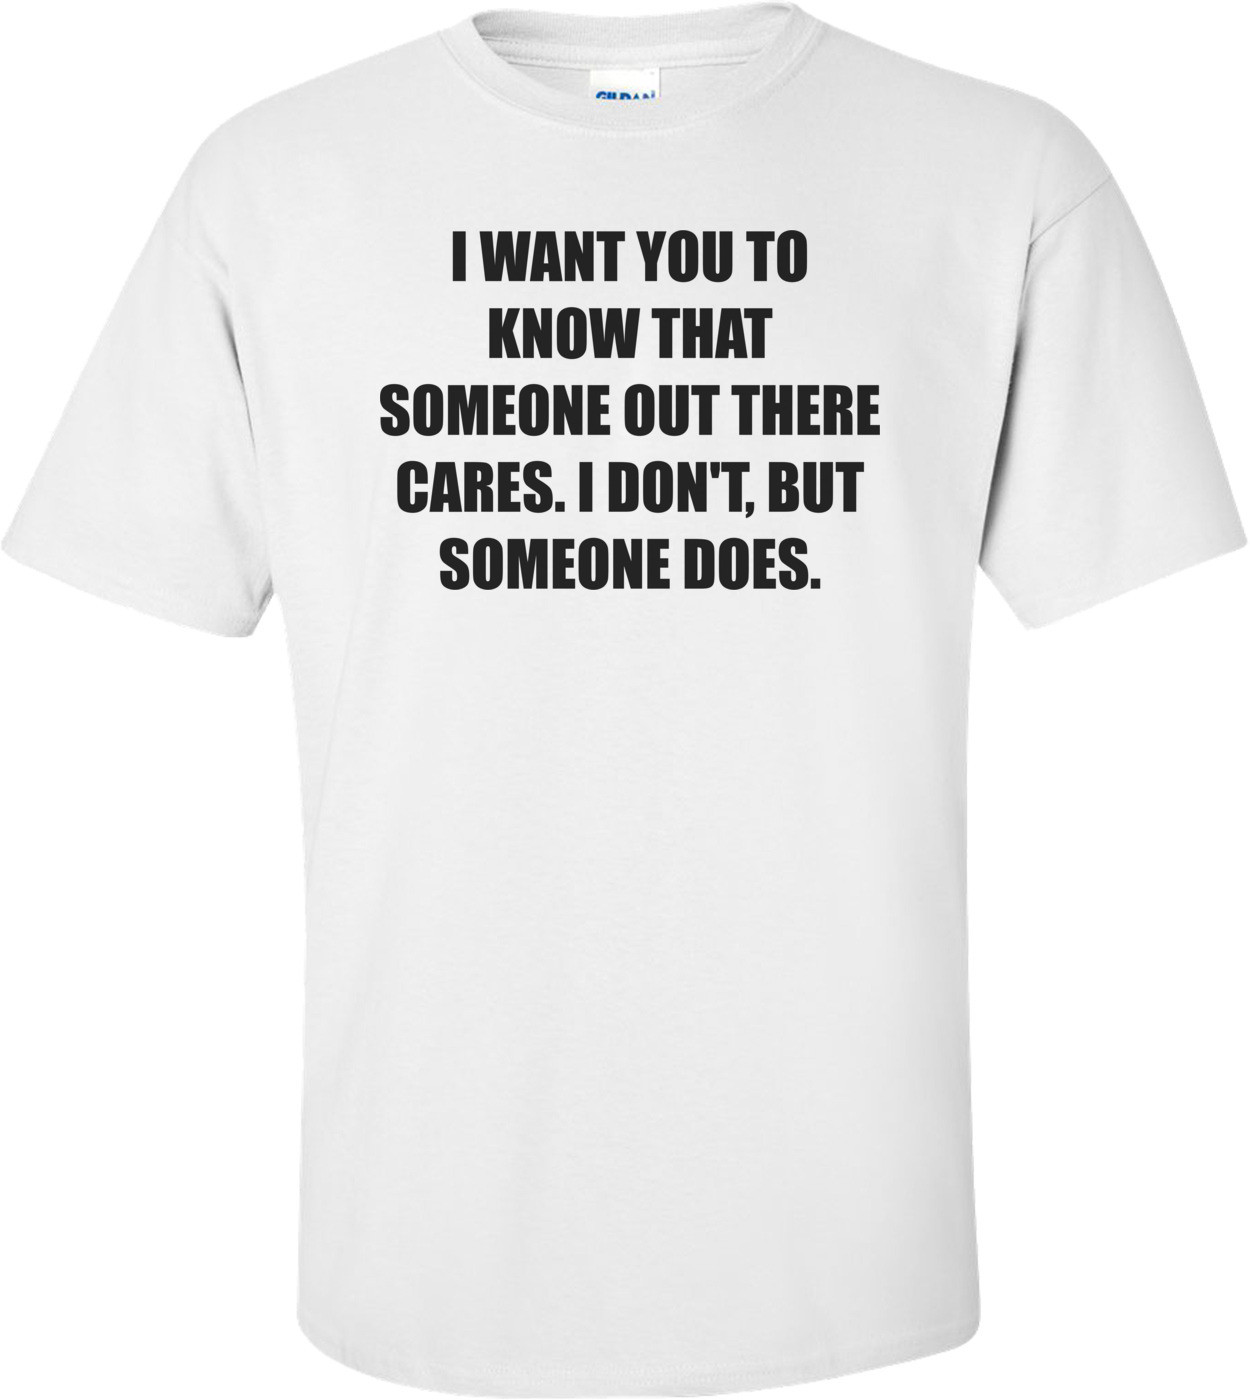 I WANT YOU TO KNOW THAT SOMEONE OUT THERE CARES. I DON'T, BUT SOMEONE DOES. Shirt